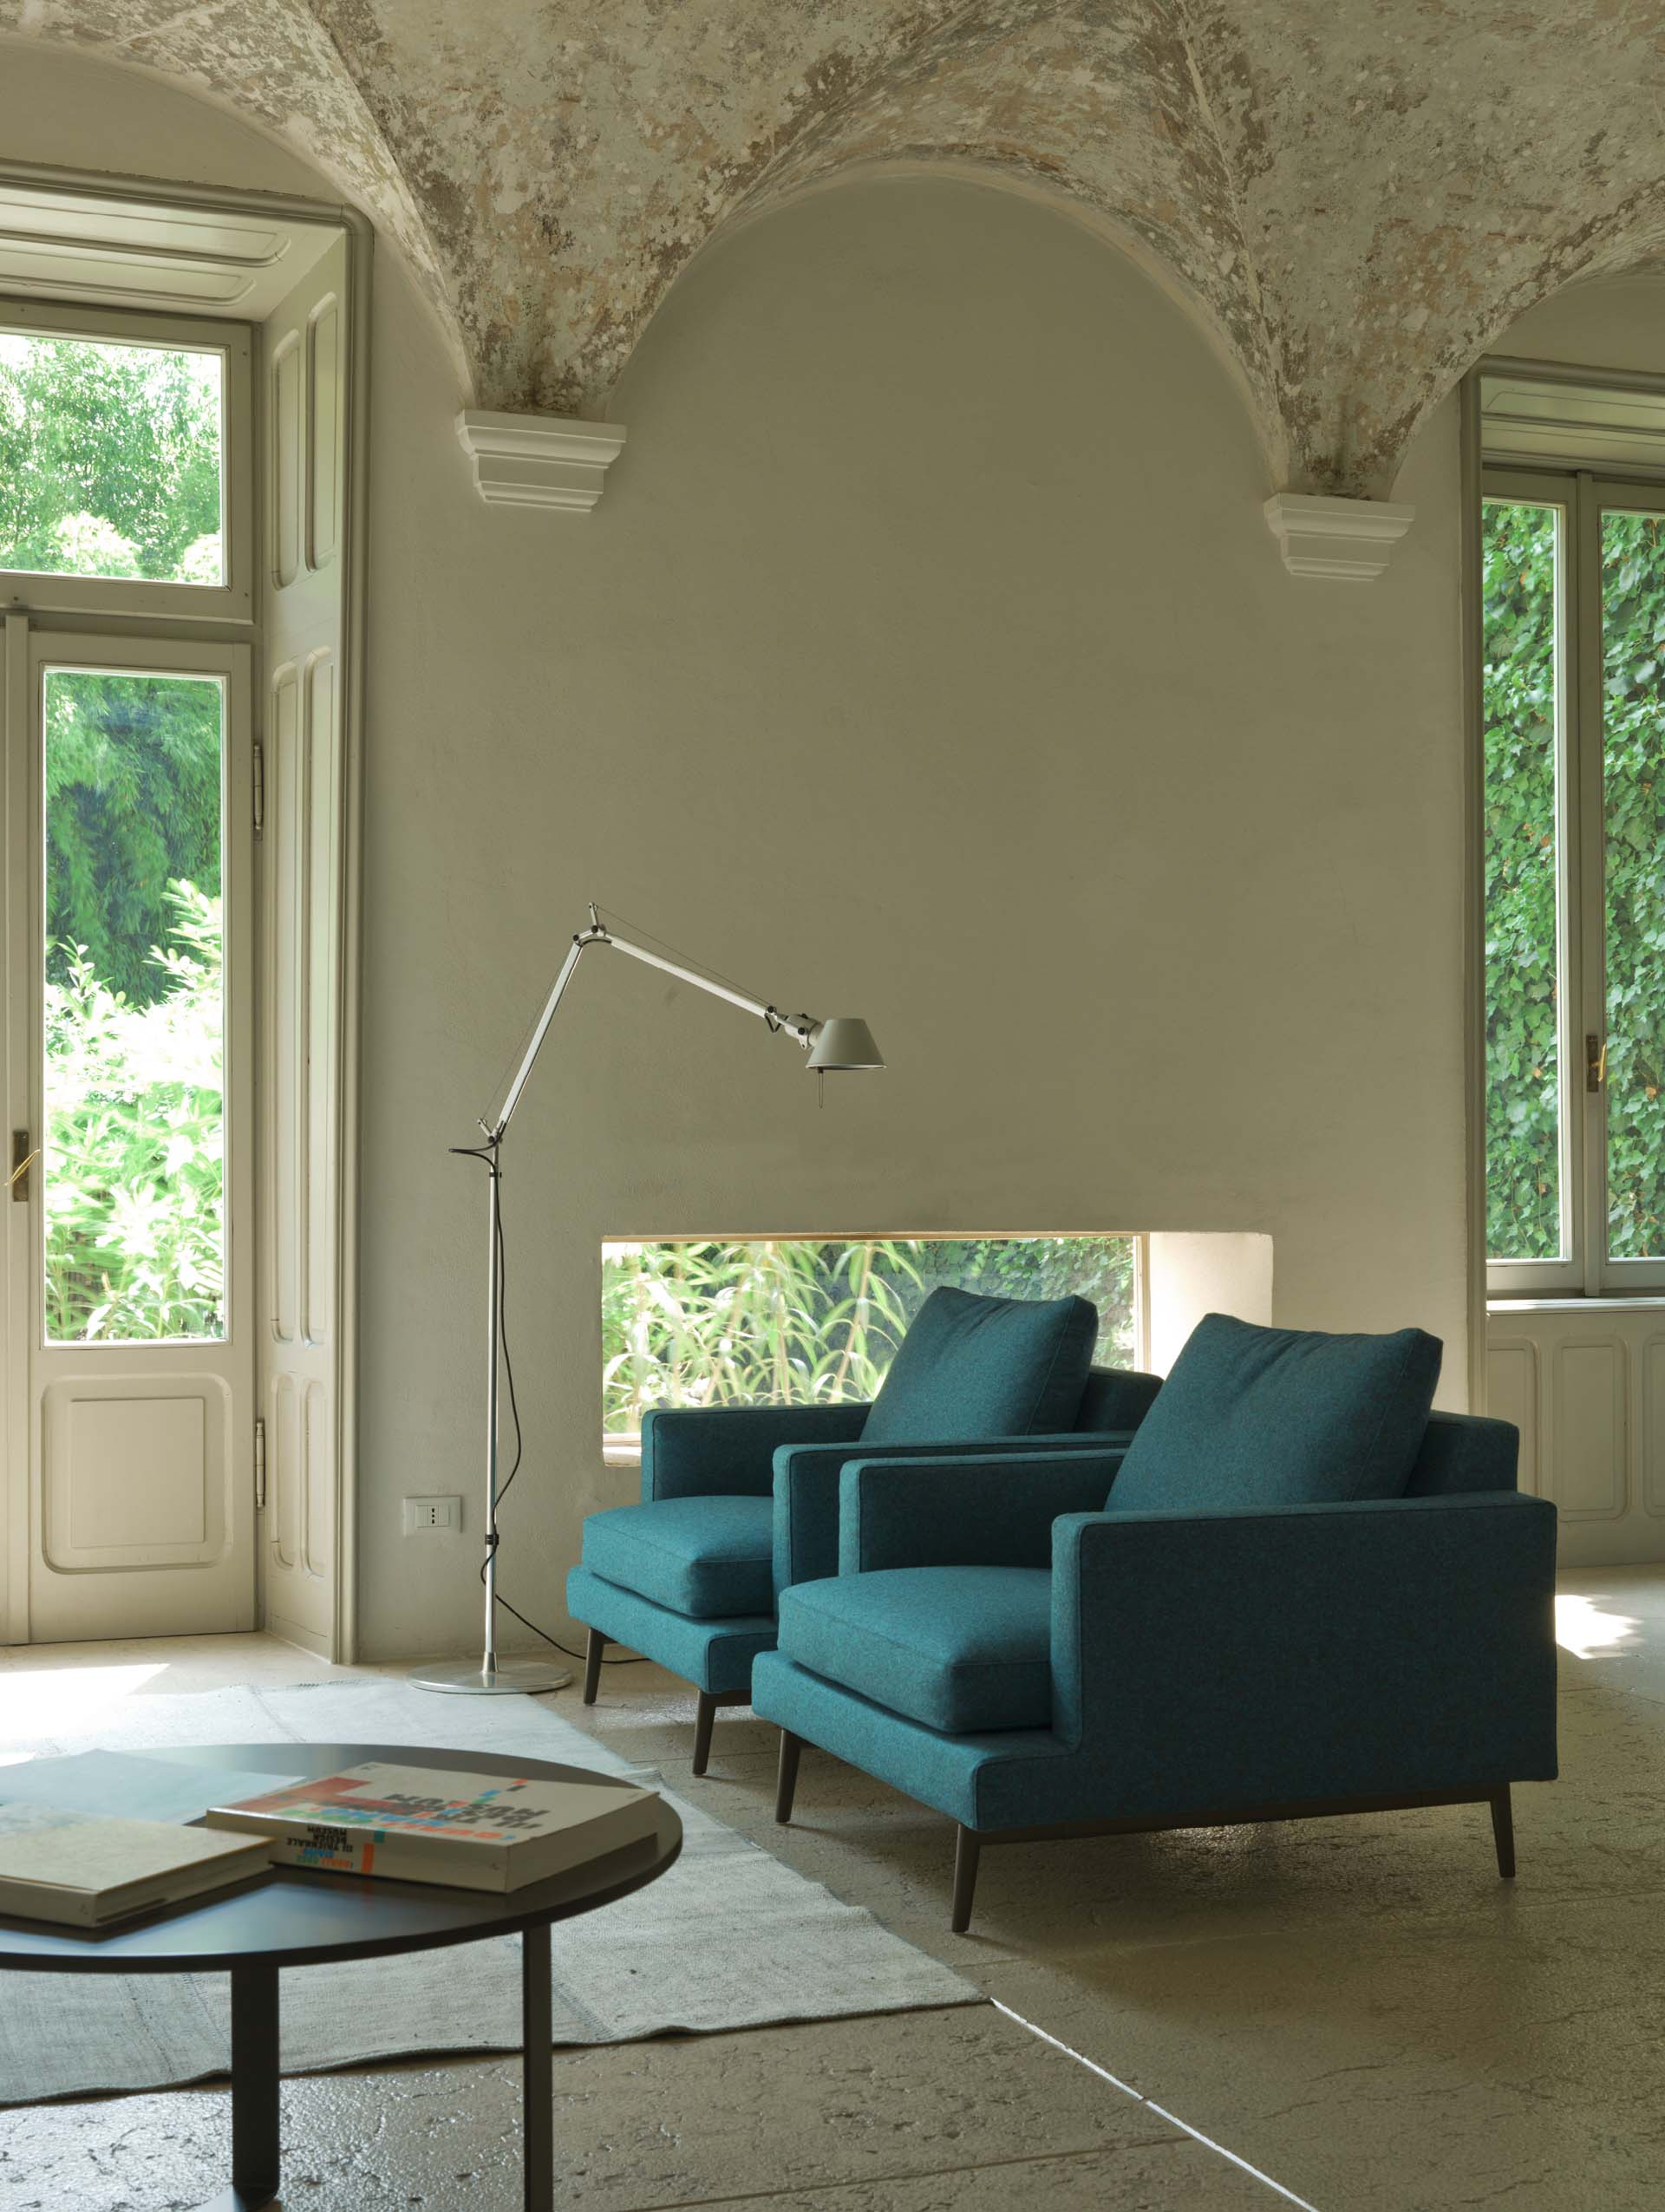 Verzelloni Sessel Larsen Armchair Verzelloni The Elegance That Refers To The